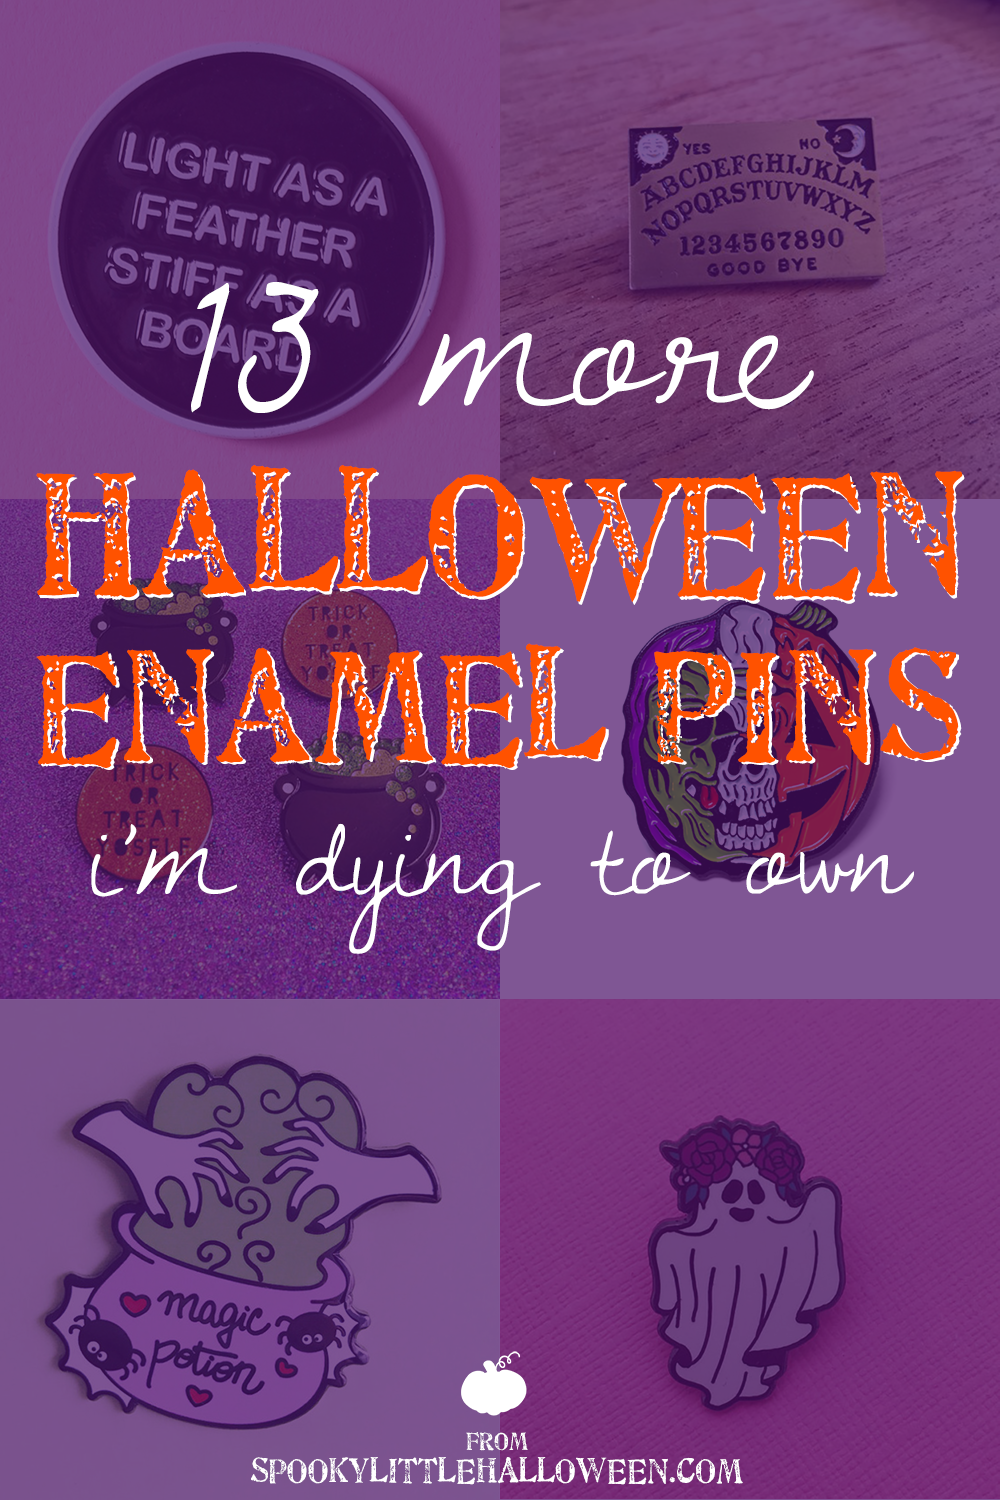 13 More Halloween Enamel Pins I M Dying To Own Spooky